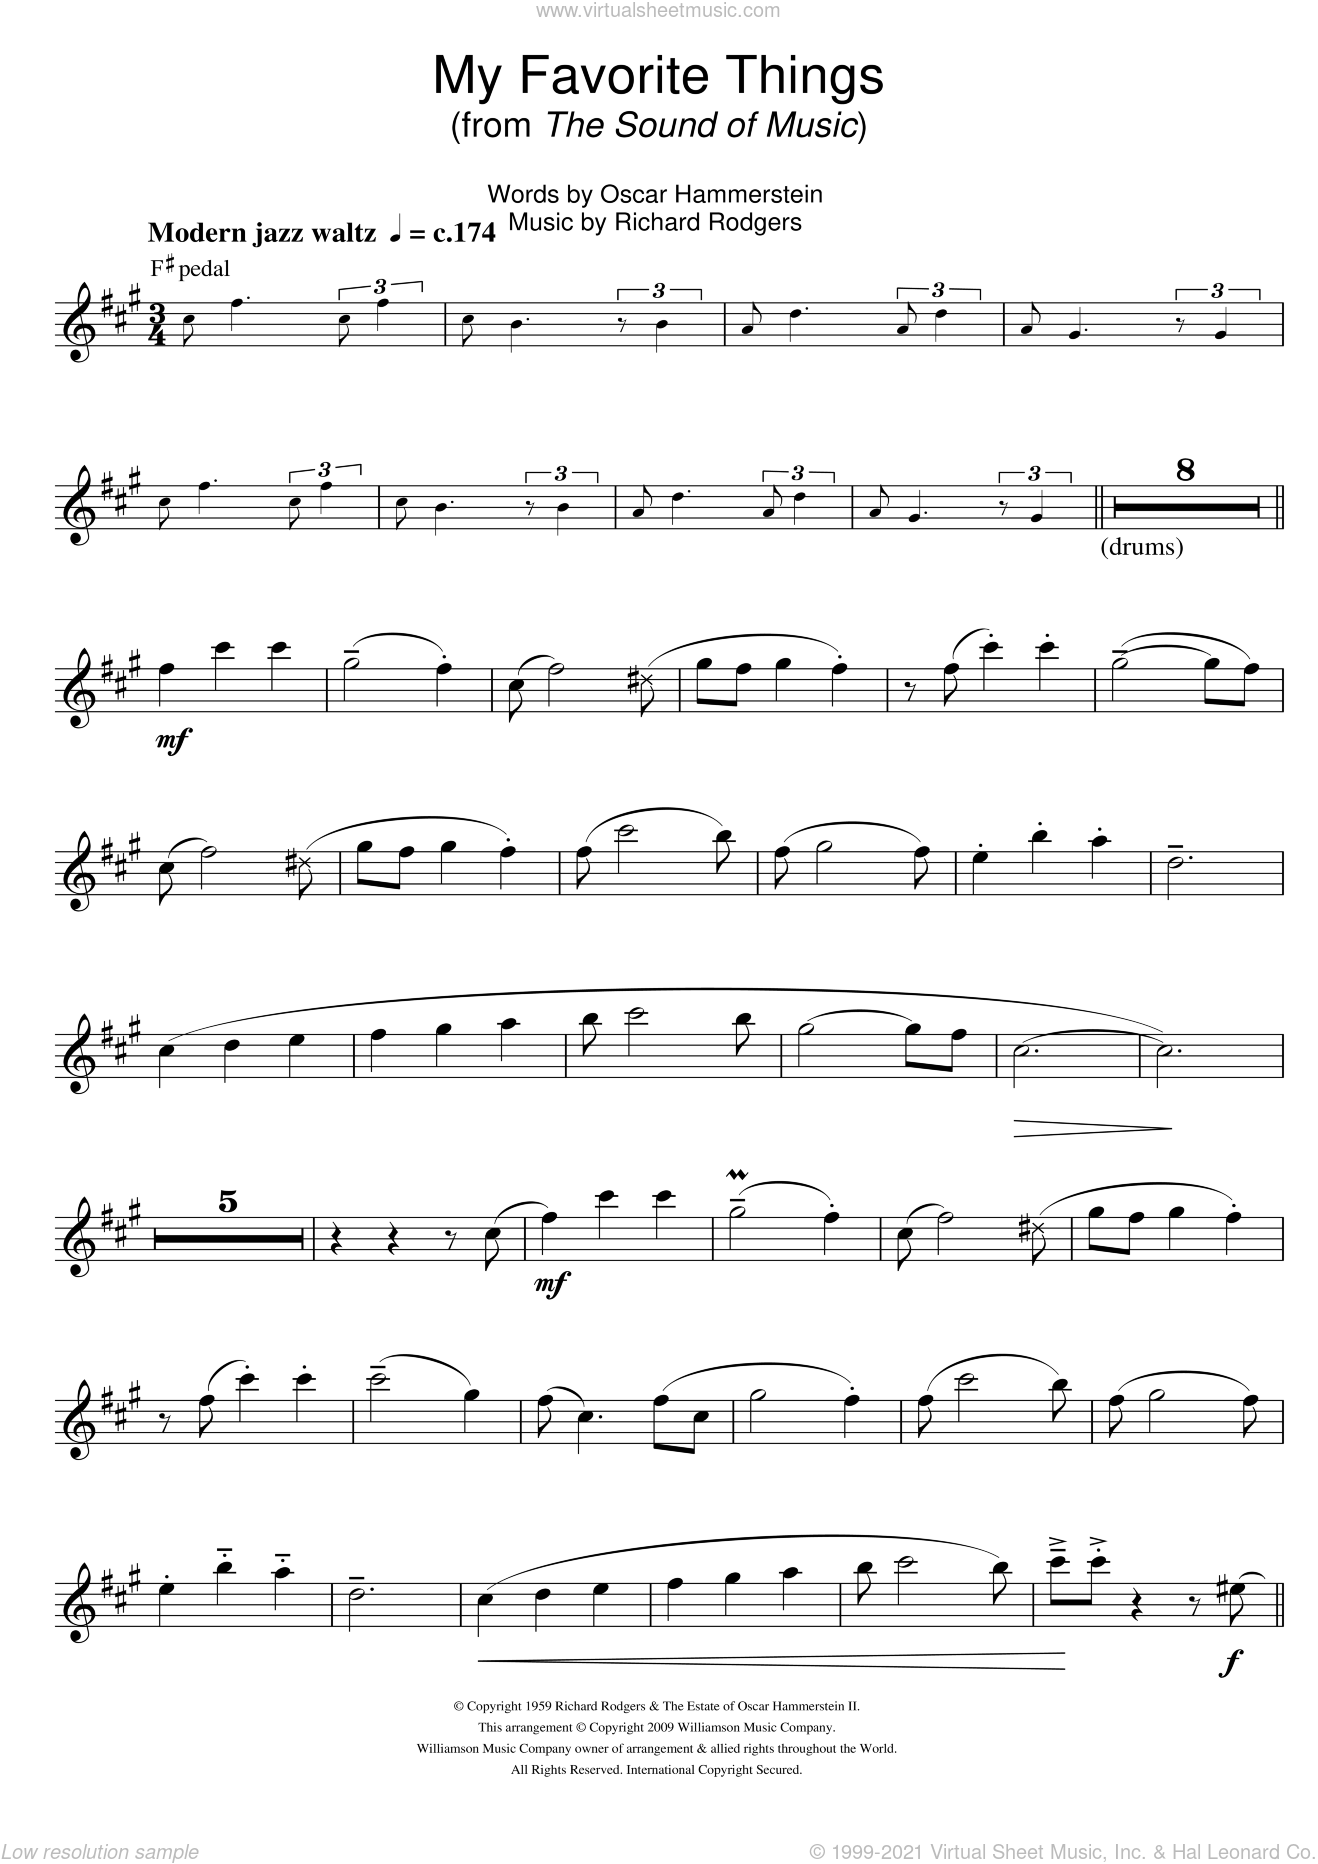 My Favorite Things (from The Sound Of Music) sheet music for tenor saxophone solo by Rodgers & Hammerstein, Richard Rodgers and Oscar II Hammerstein, intermediate skill level